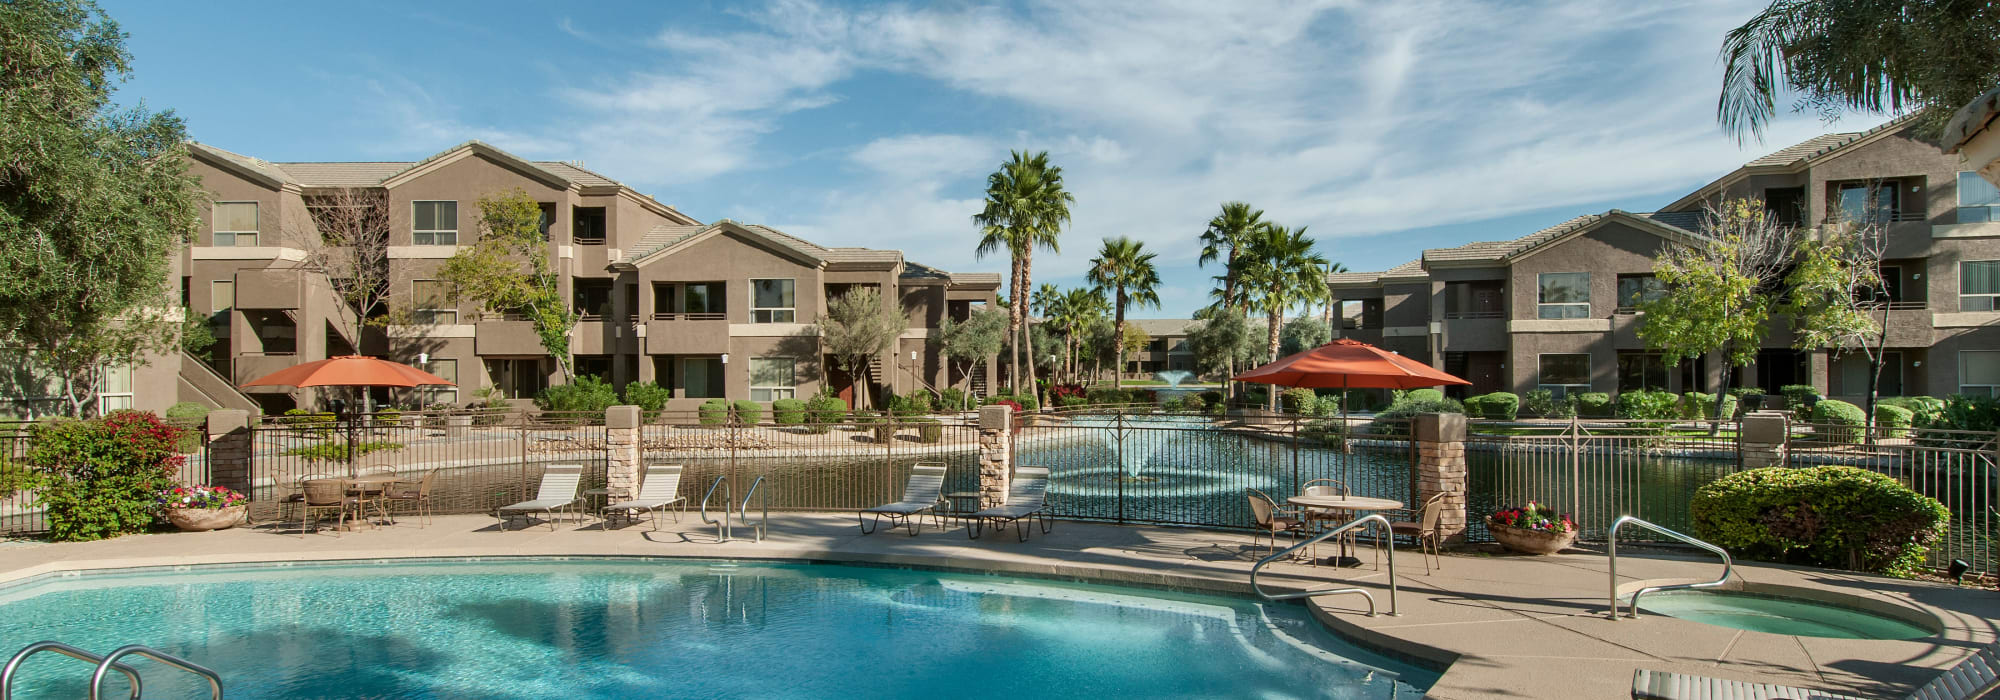 Resident pool at Laguna at Arrowhead Ranch in Glendale, Arizona